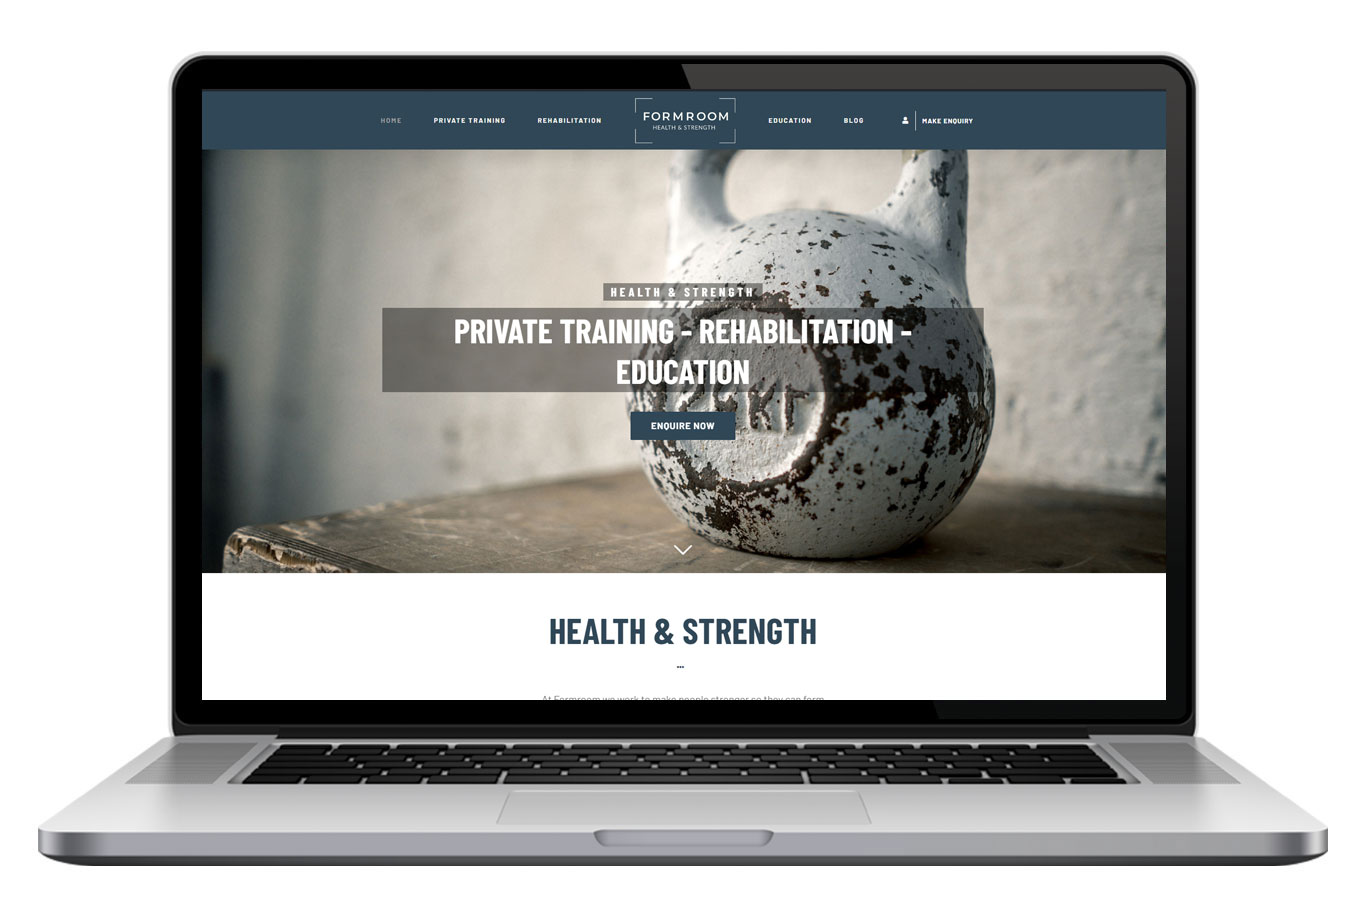 FormRoom Website Design